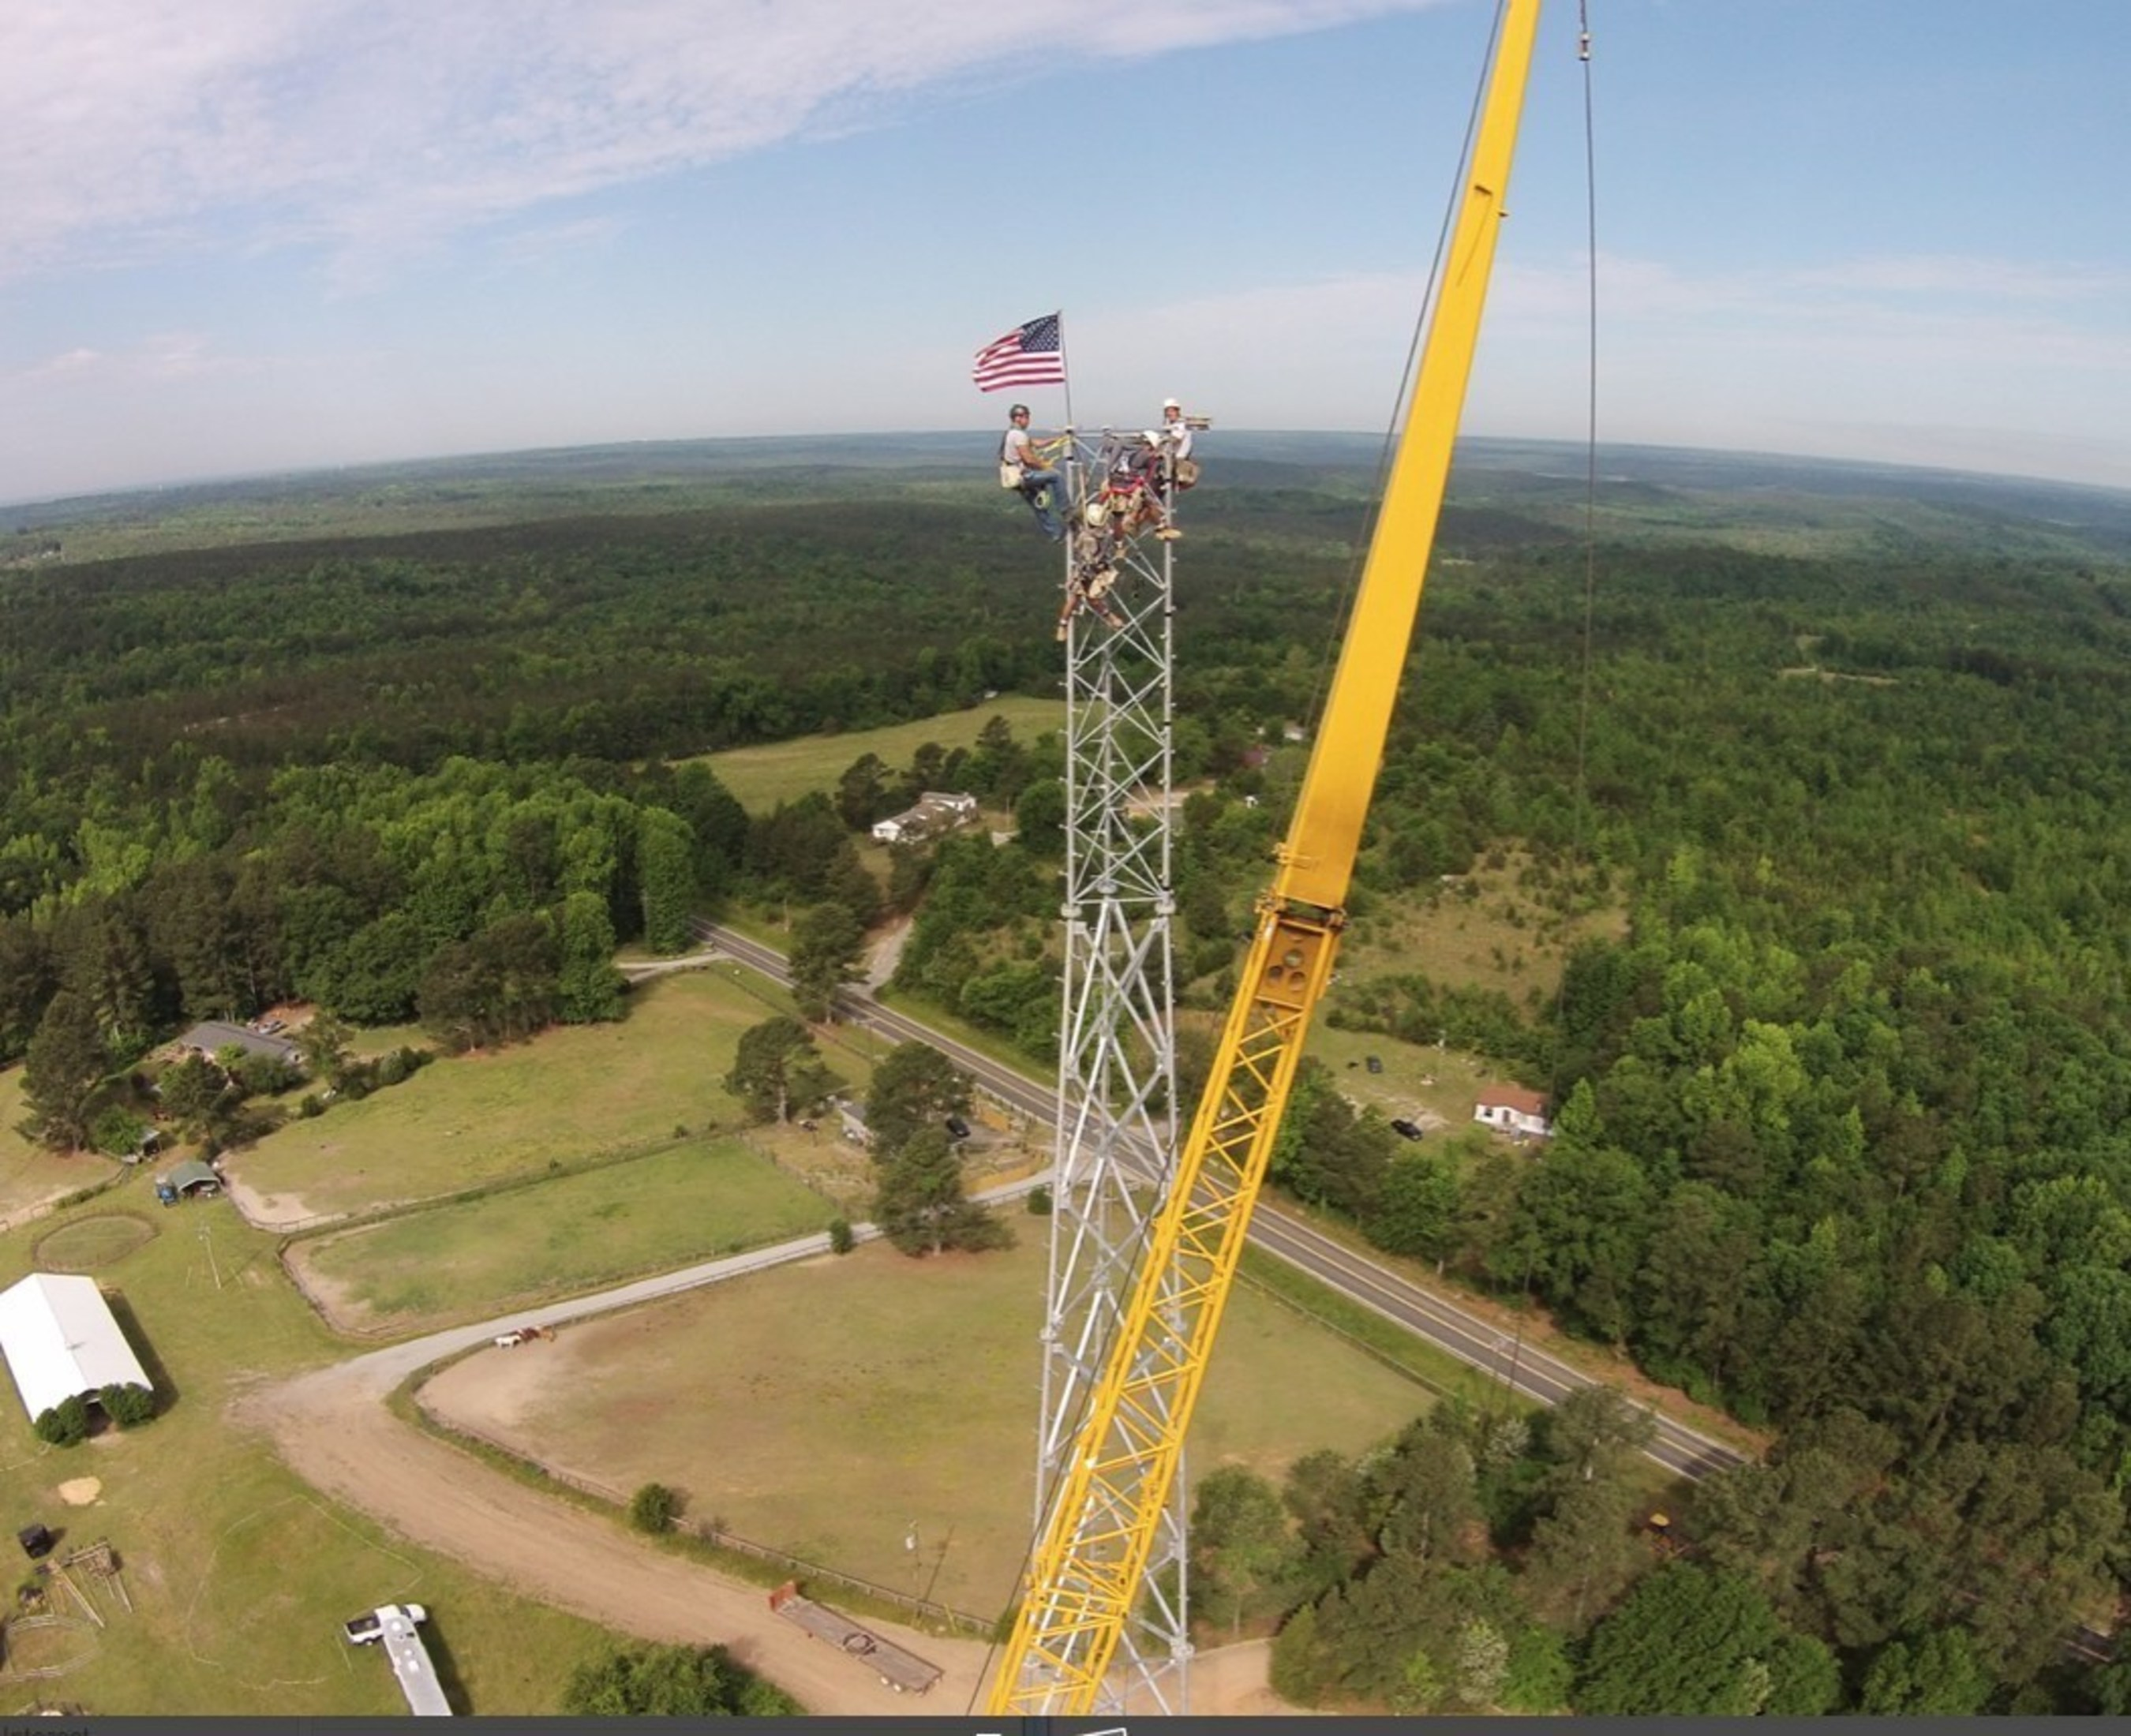 Subcarrier's latest completed tower development project in Ridgeway, South Carolina.